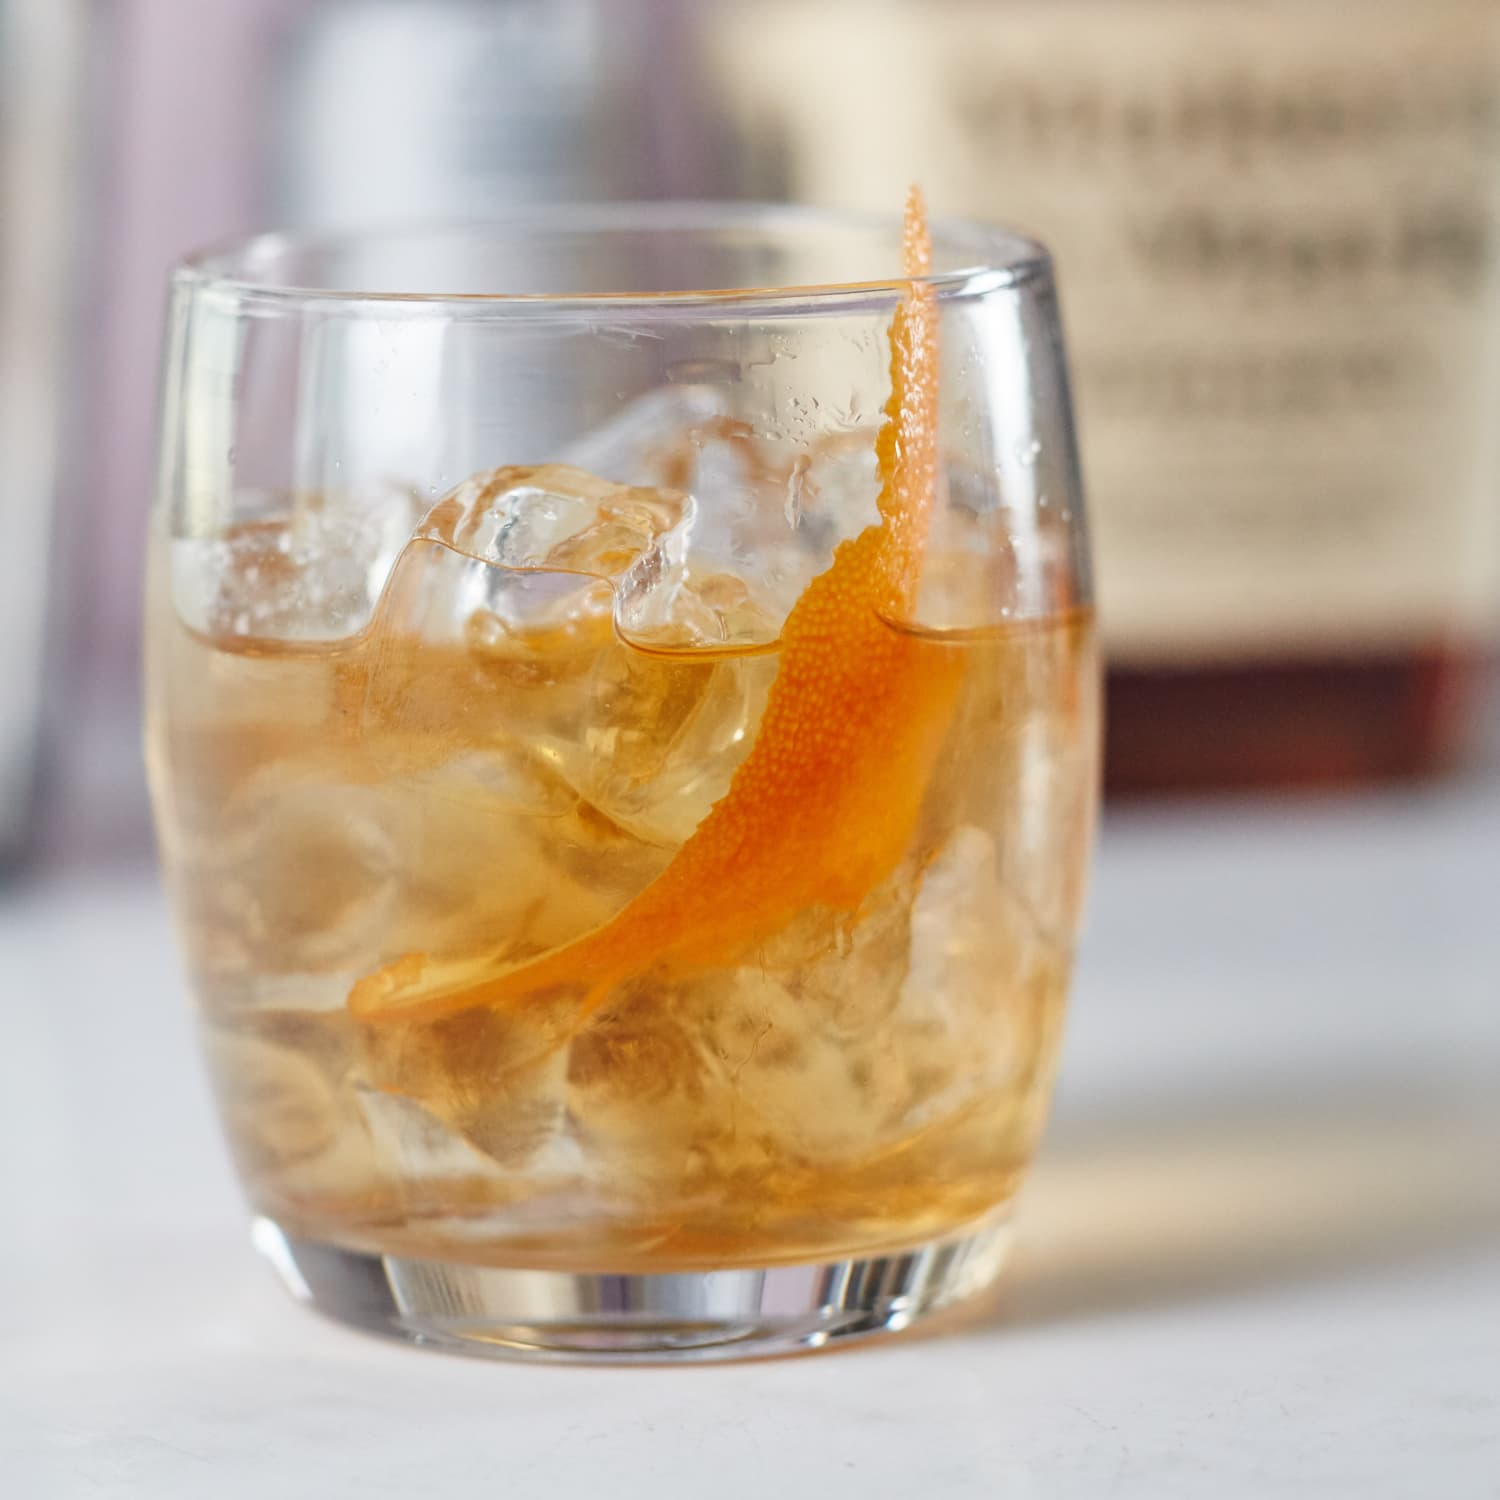 How To Make a Classic Old-Fashioned Cocktail